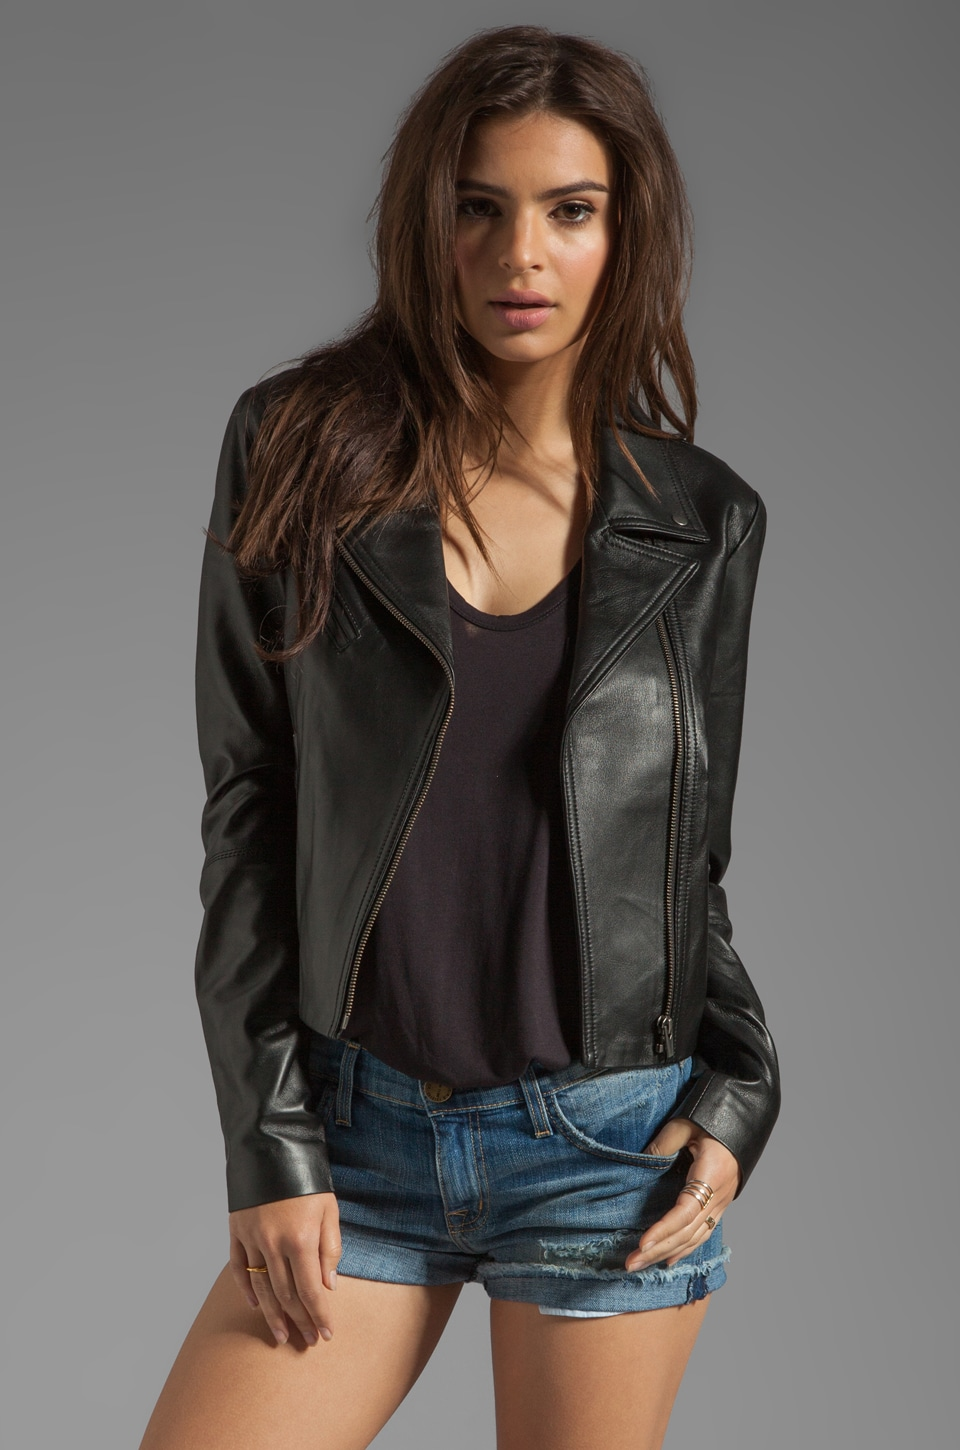 VEDA Jewel Moto Jacket in Black